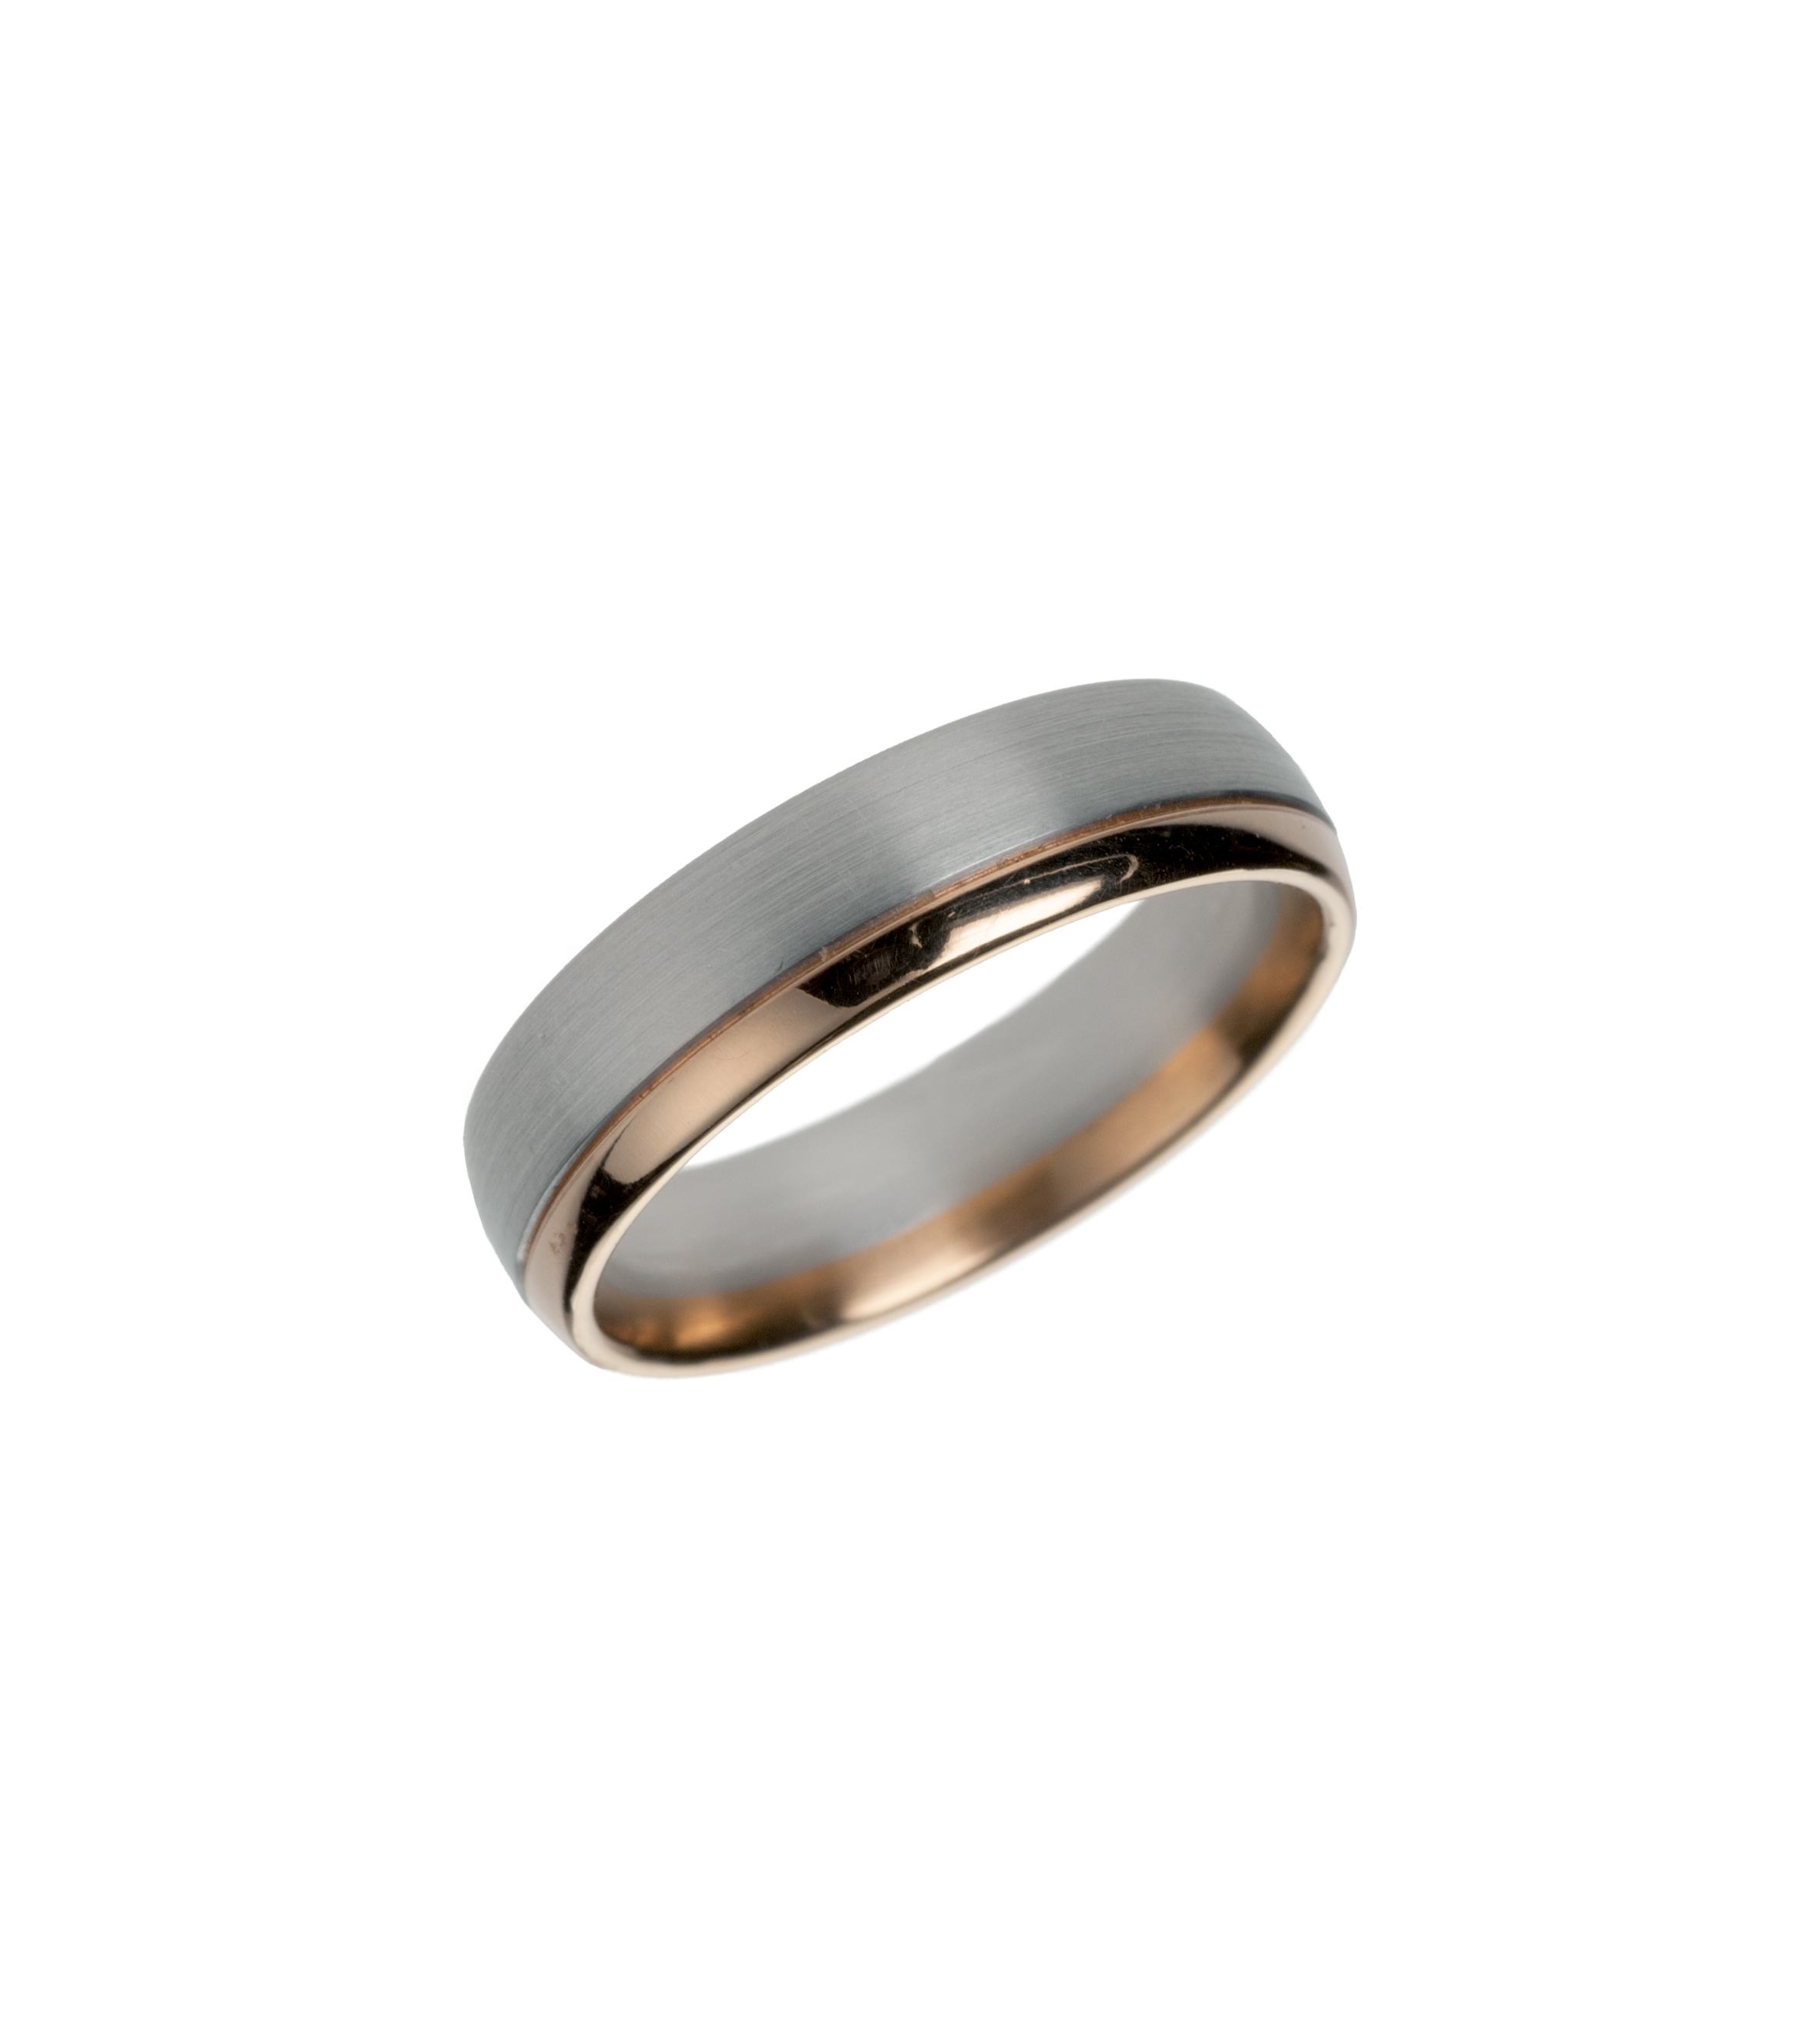 Platinum and rose gold wedding band